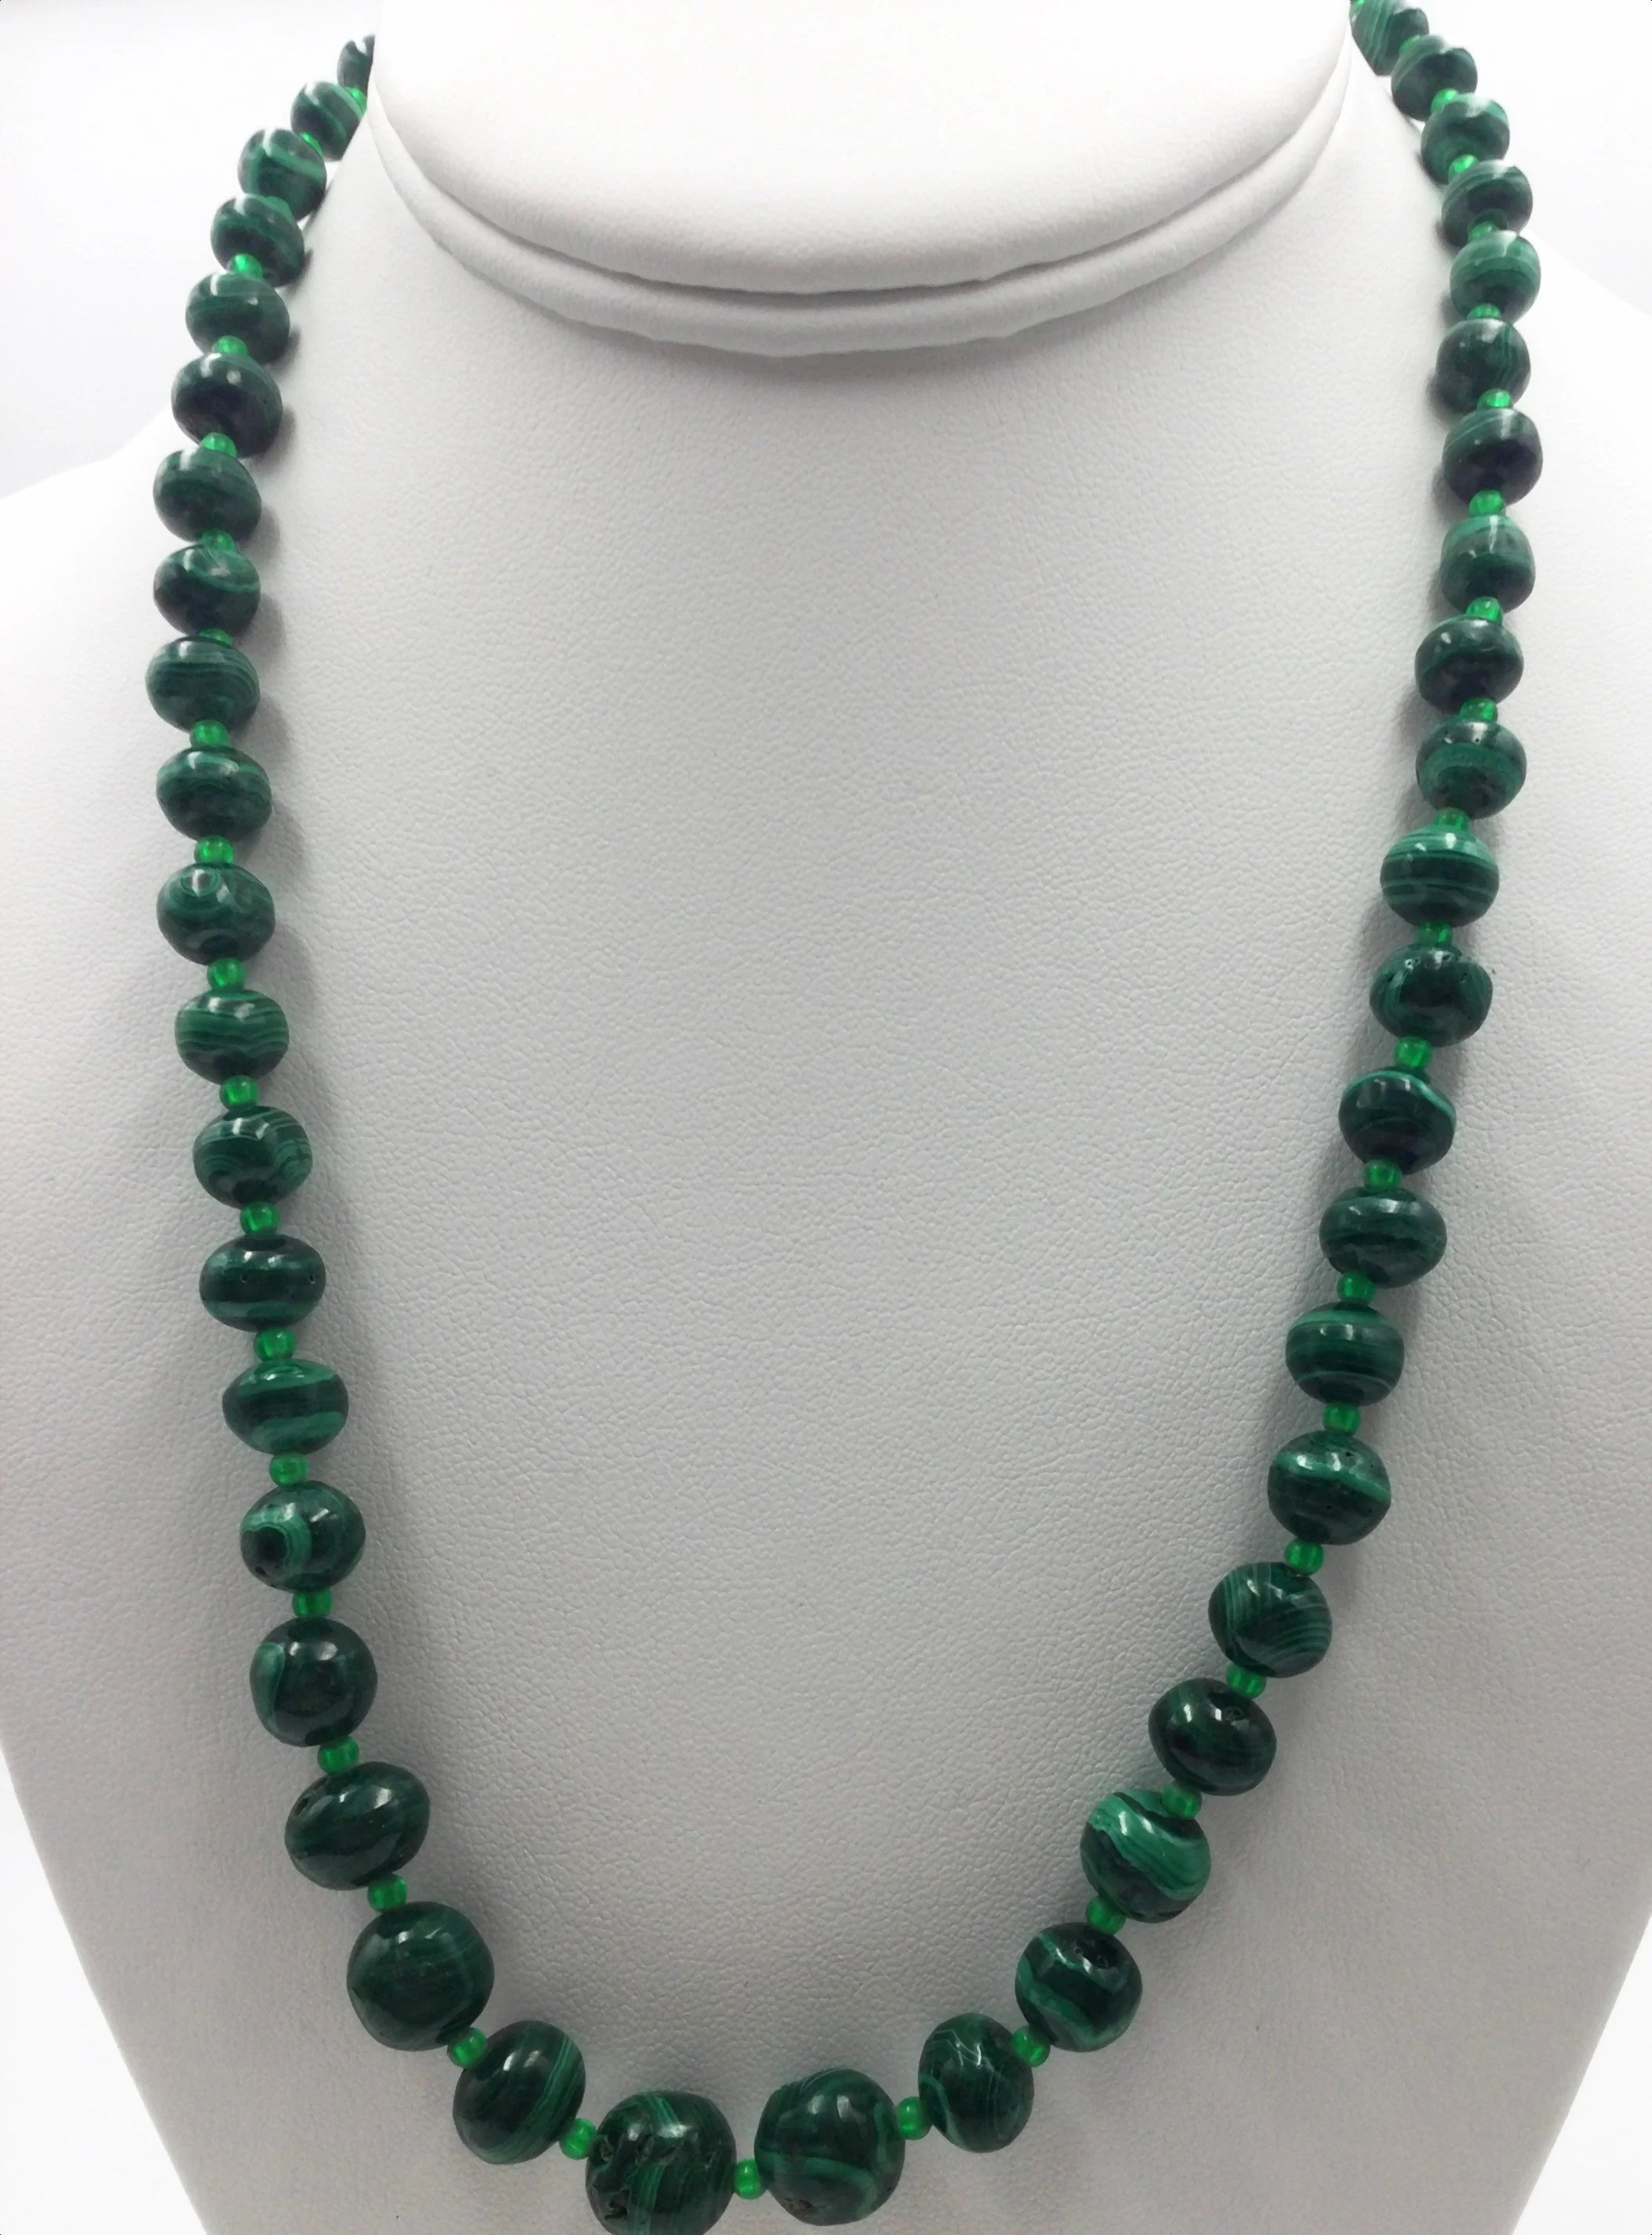 Real Malachite Necklace : malachite, necklace, Genuine, Malachite, Knotted, Necklace, Vintage